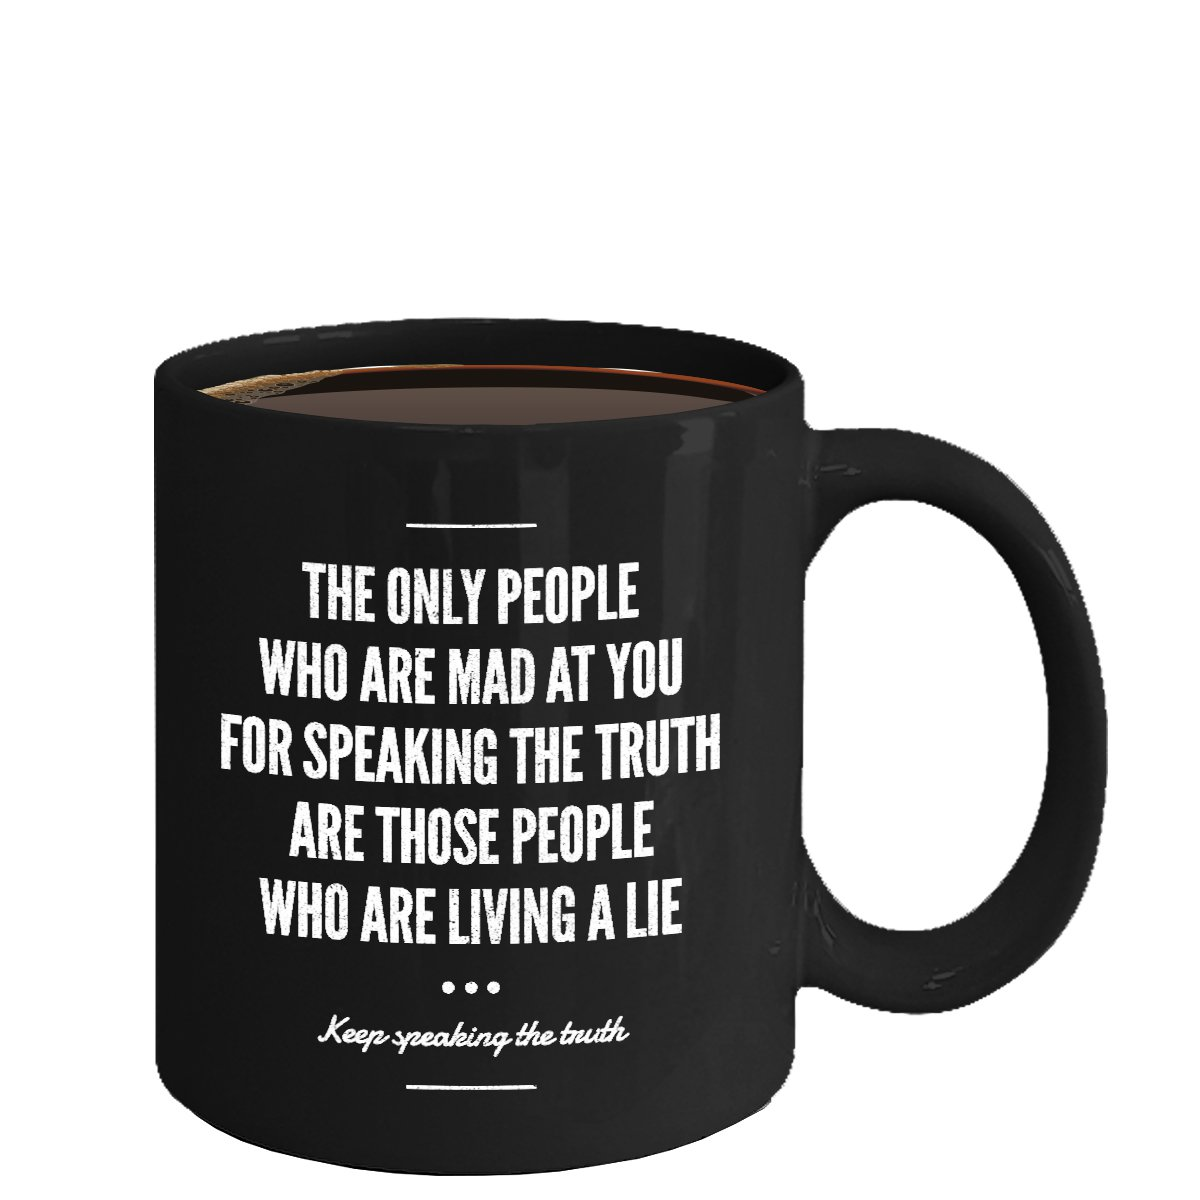 Inspirational Ceramic Coffee Mug - Living a Lie - Cool Large Cup (Black) - Best Gift for Men, Women